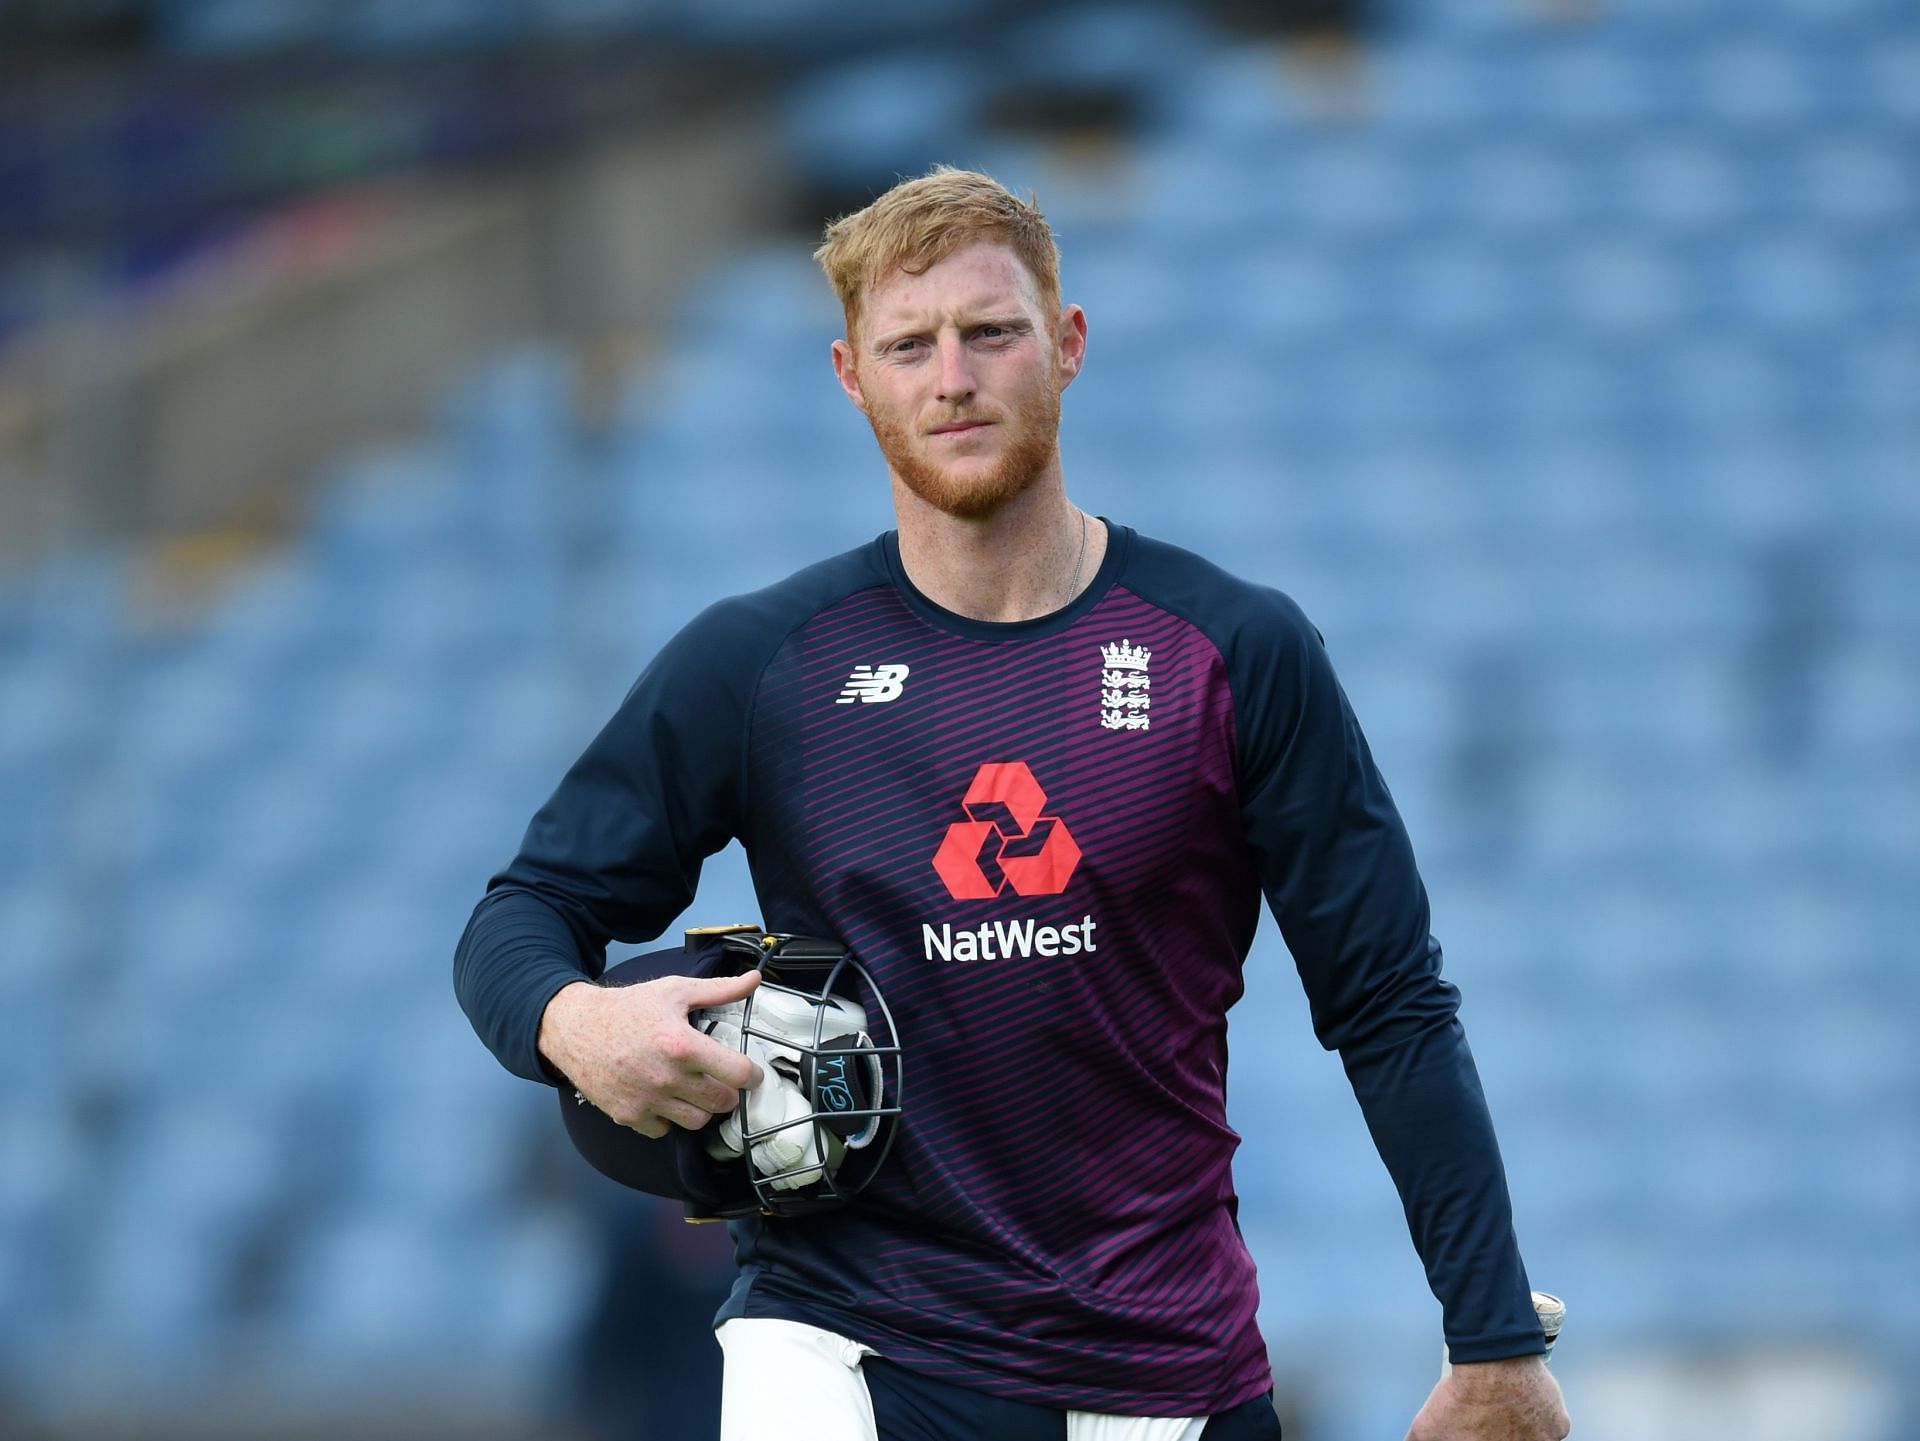 Ben Stokes was seen knocking a few at an indoor facility on Thursday